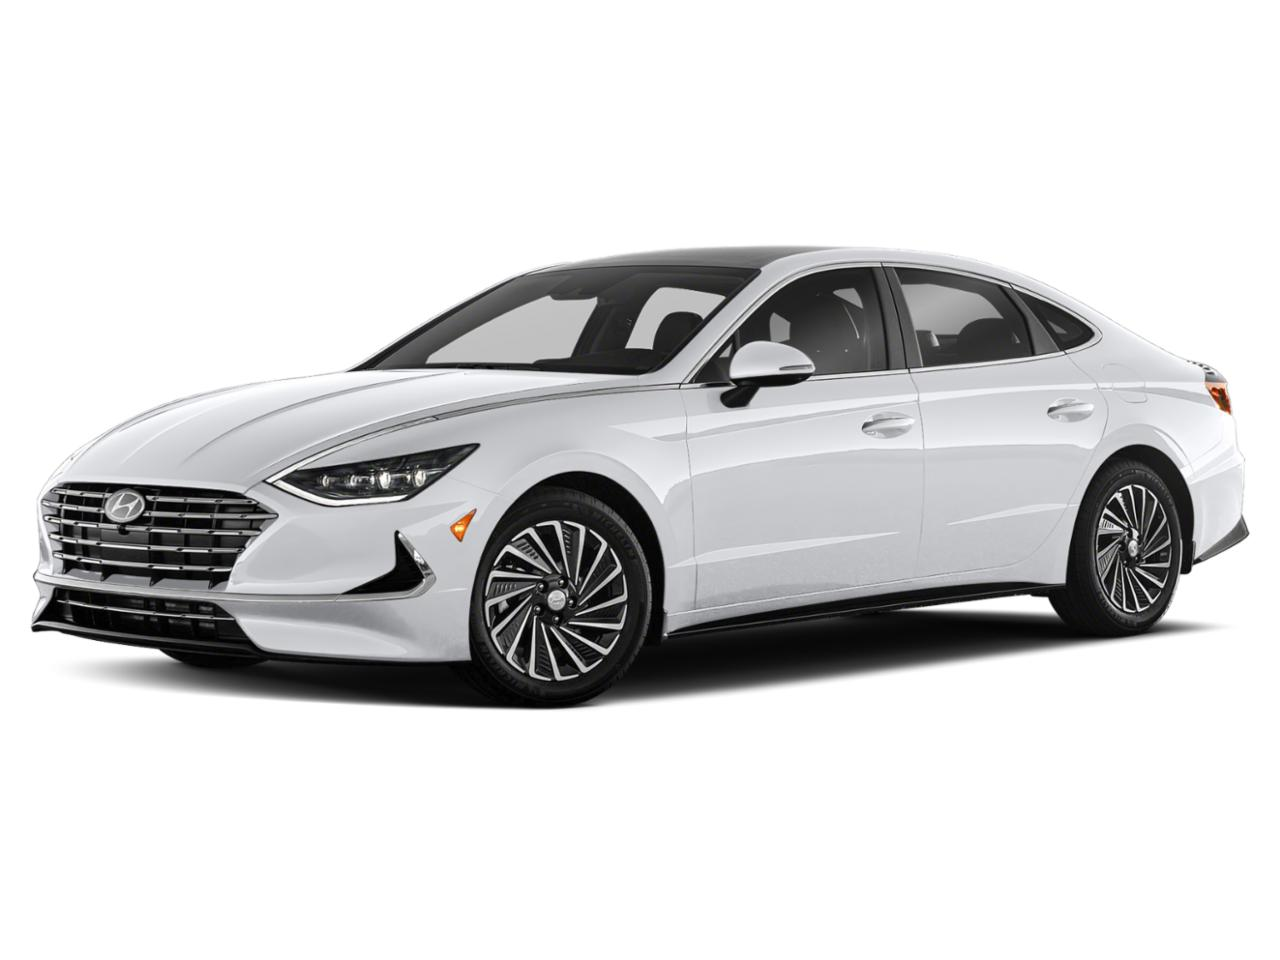 2021 Hyundai Sonata Hybrid Vehicle Photo in Owensboro, KY 42303